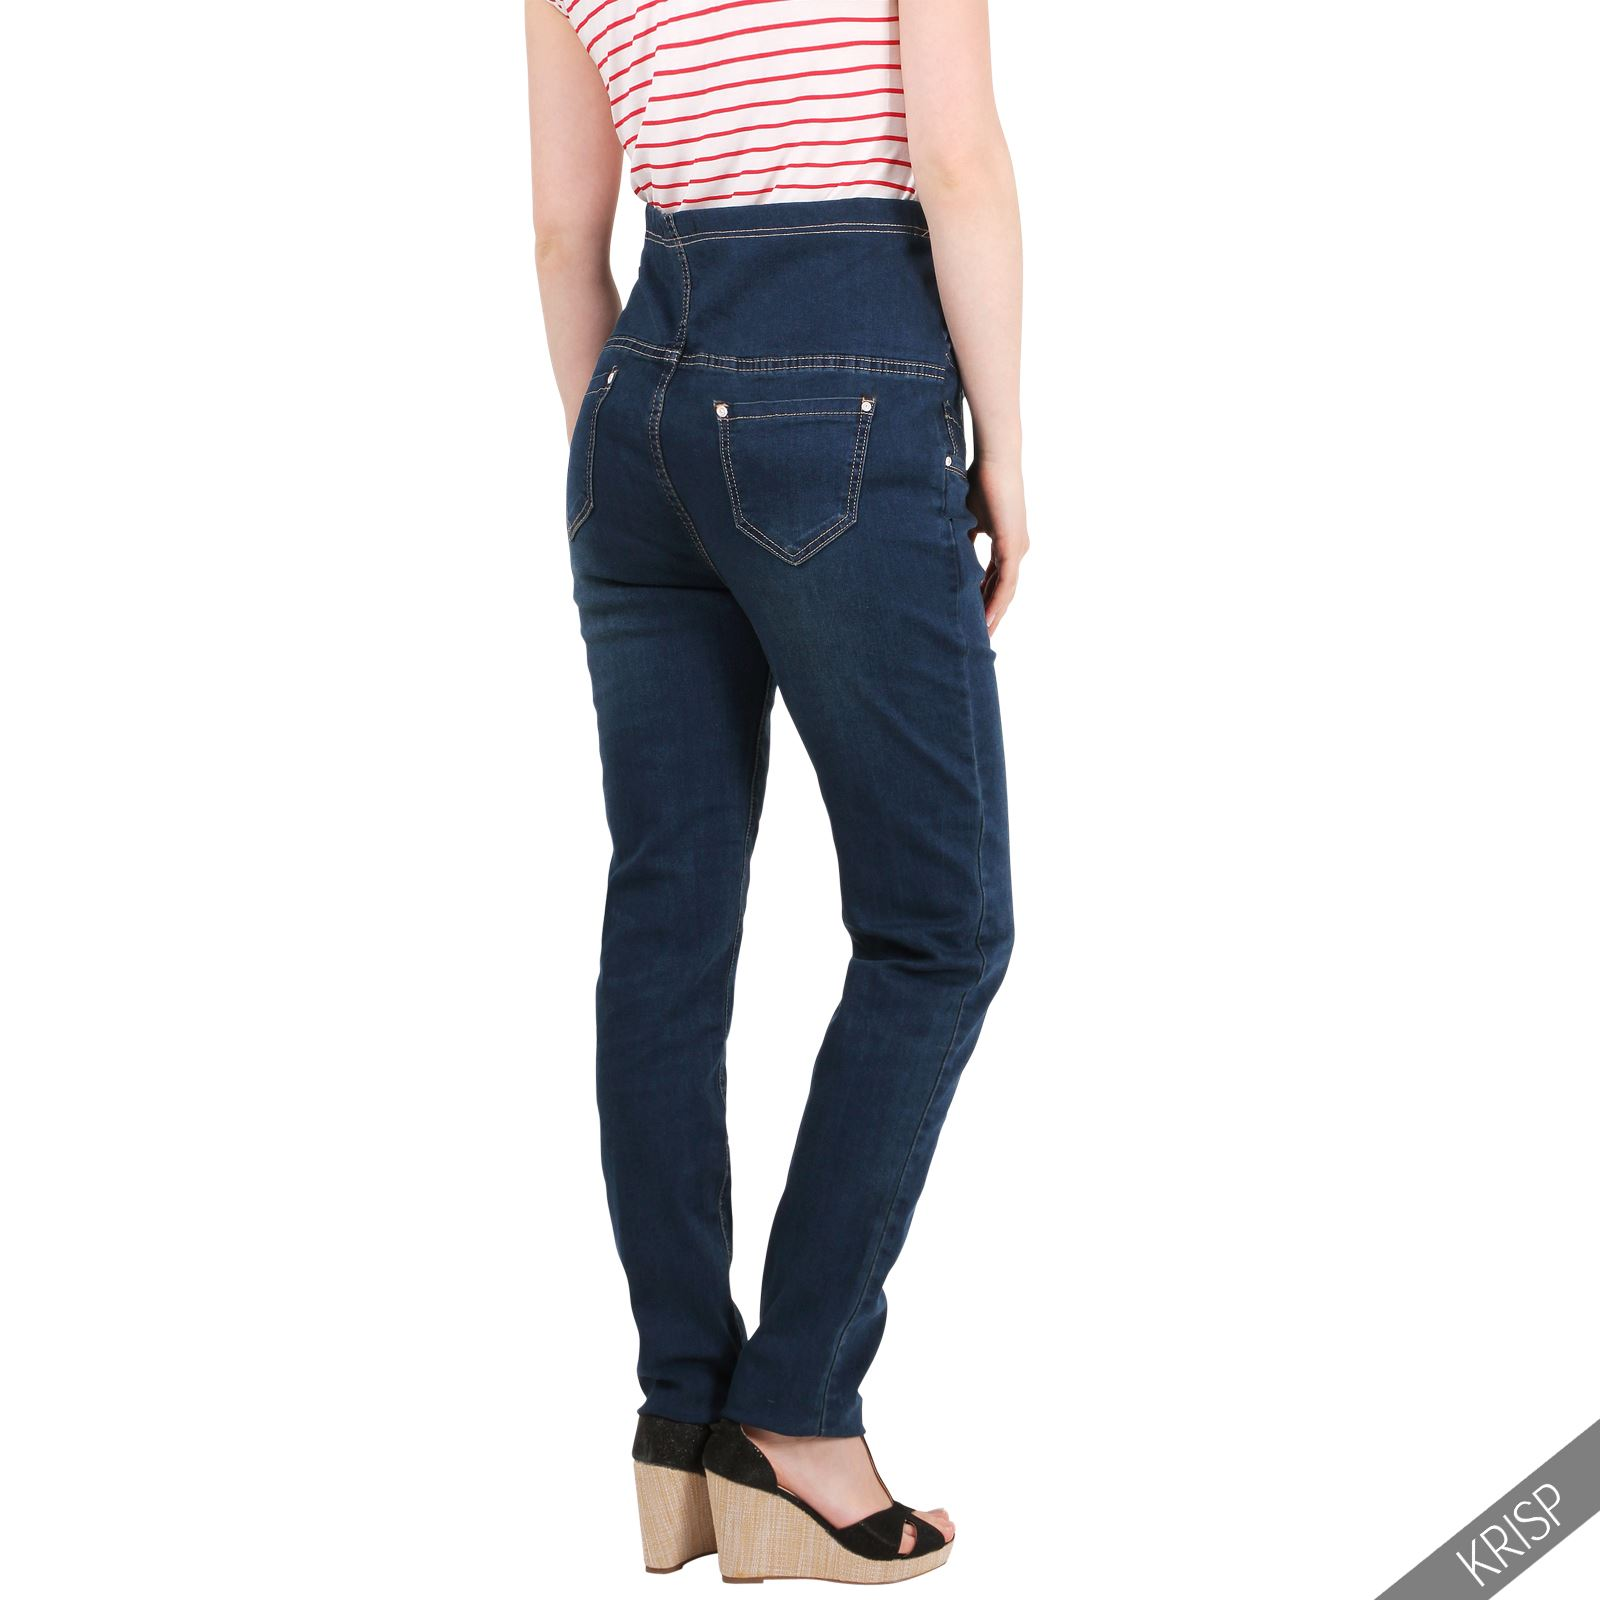 Finally! Stylish maternity jeans with a ribbed adjustable waist. Our popular ultra-stretch jeans, designed for expecting mothers. Ribbed waistband made from gentle fabric provides an .